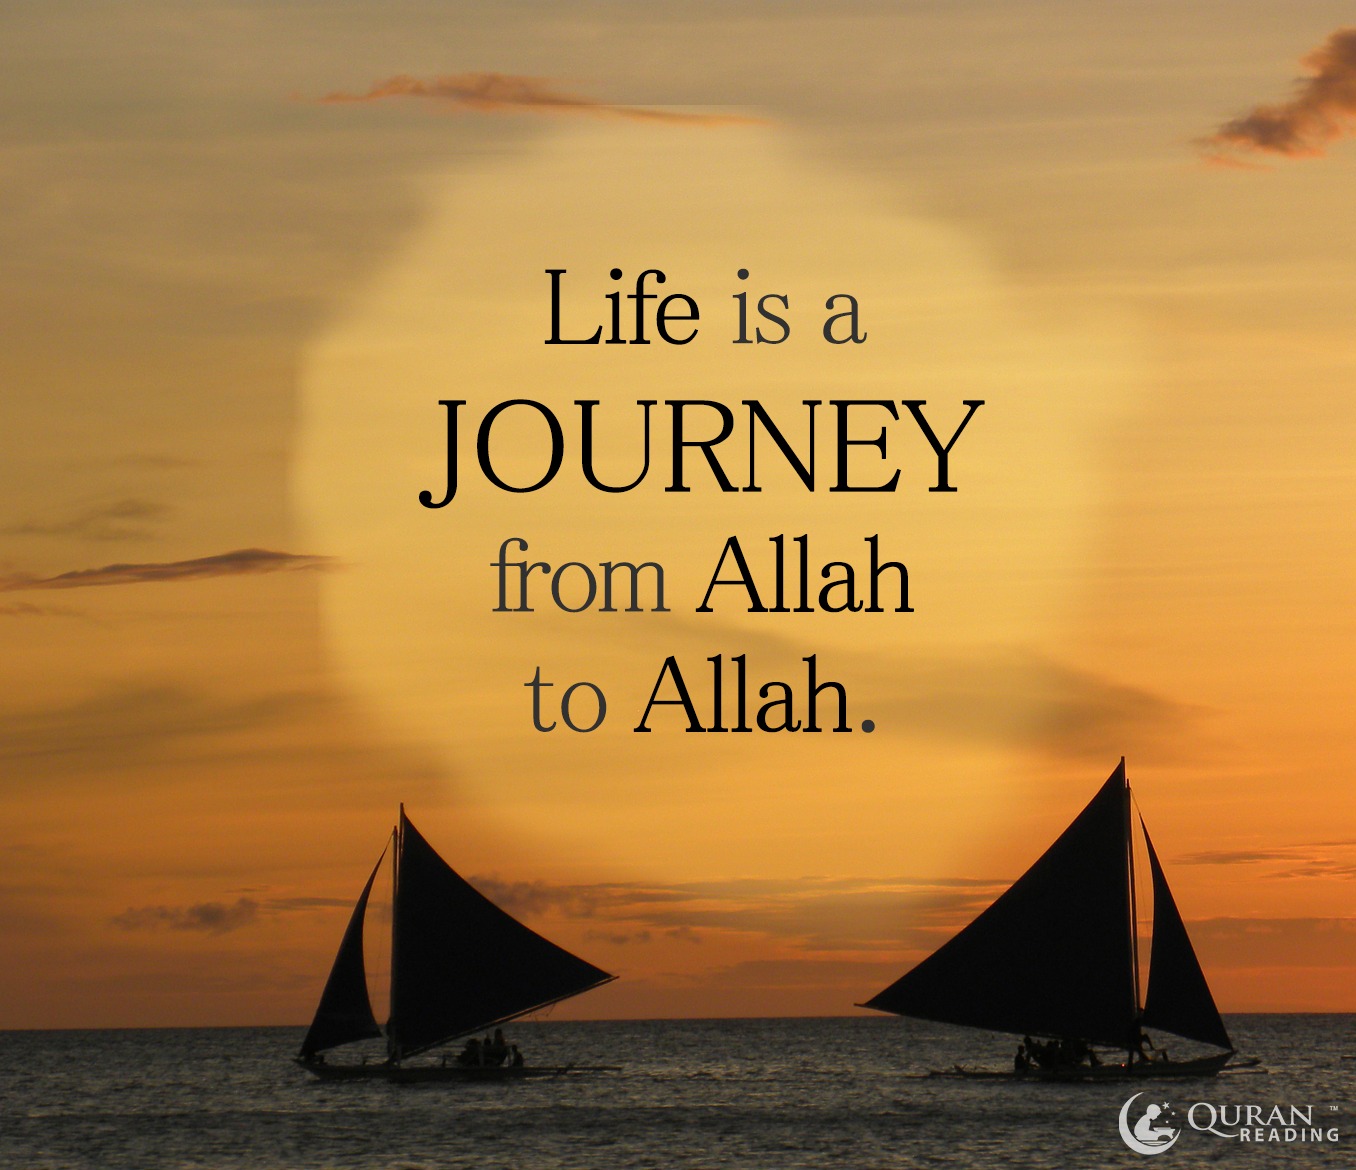 Life is a journey from Allah to Allah. Islamic